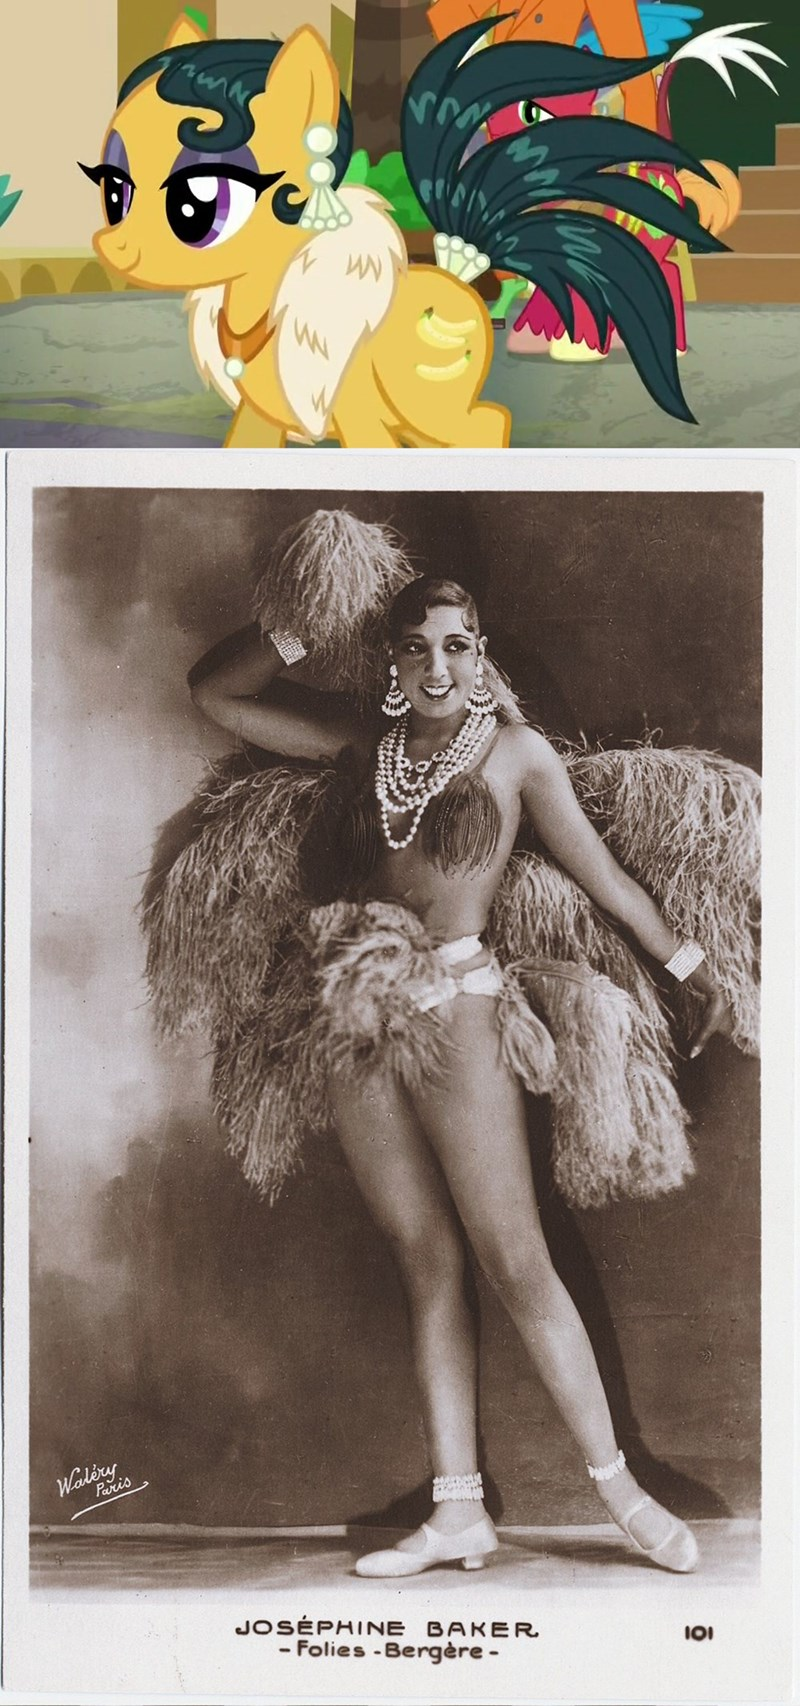 josephine baker,dungeons and discords